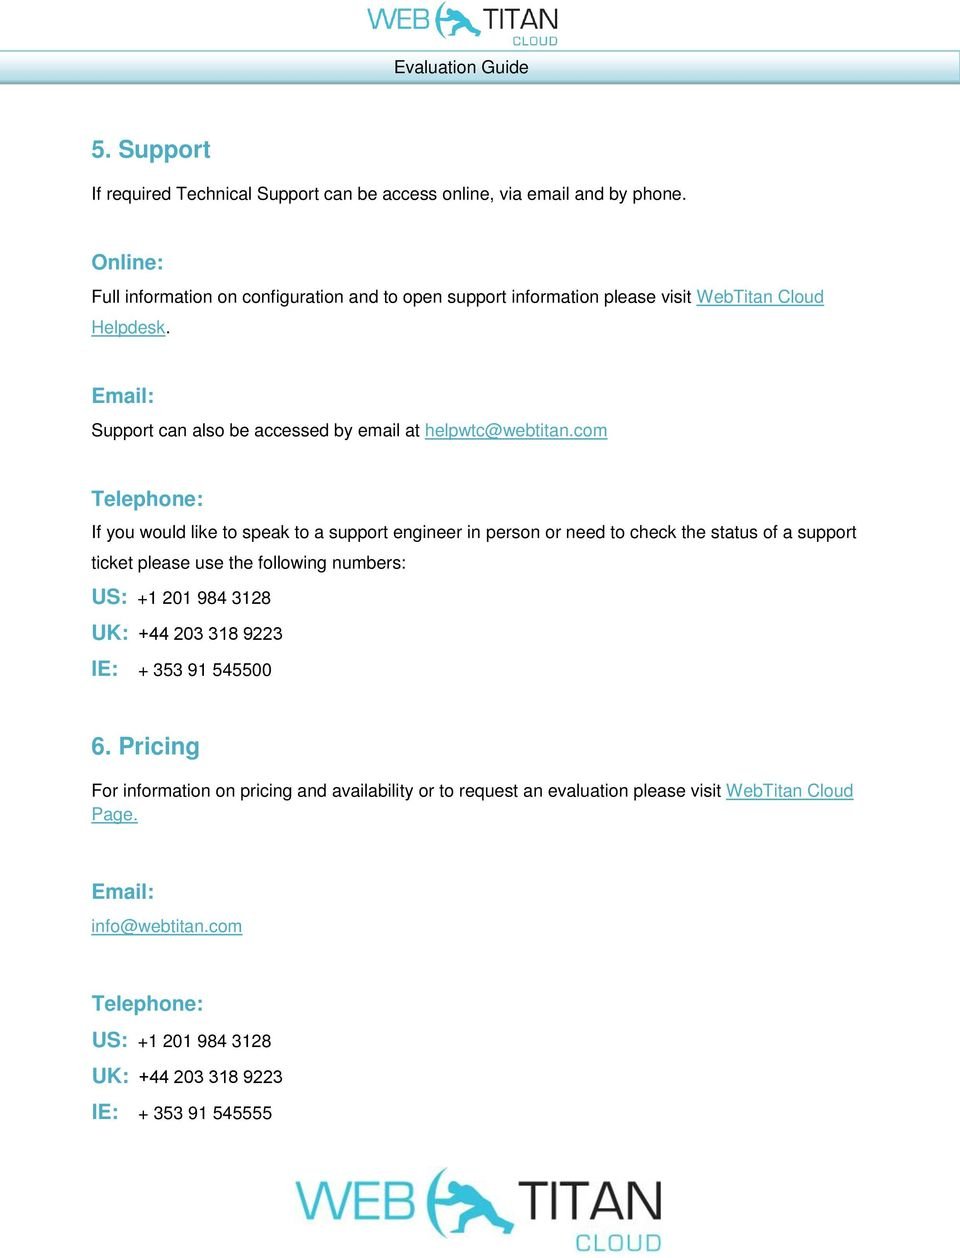 Email: Support can also be accessed by email at helpwtc@webtitan.